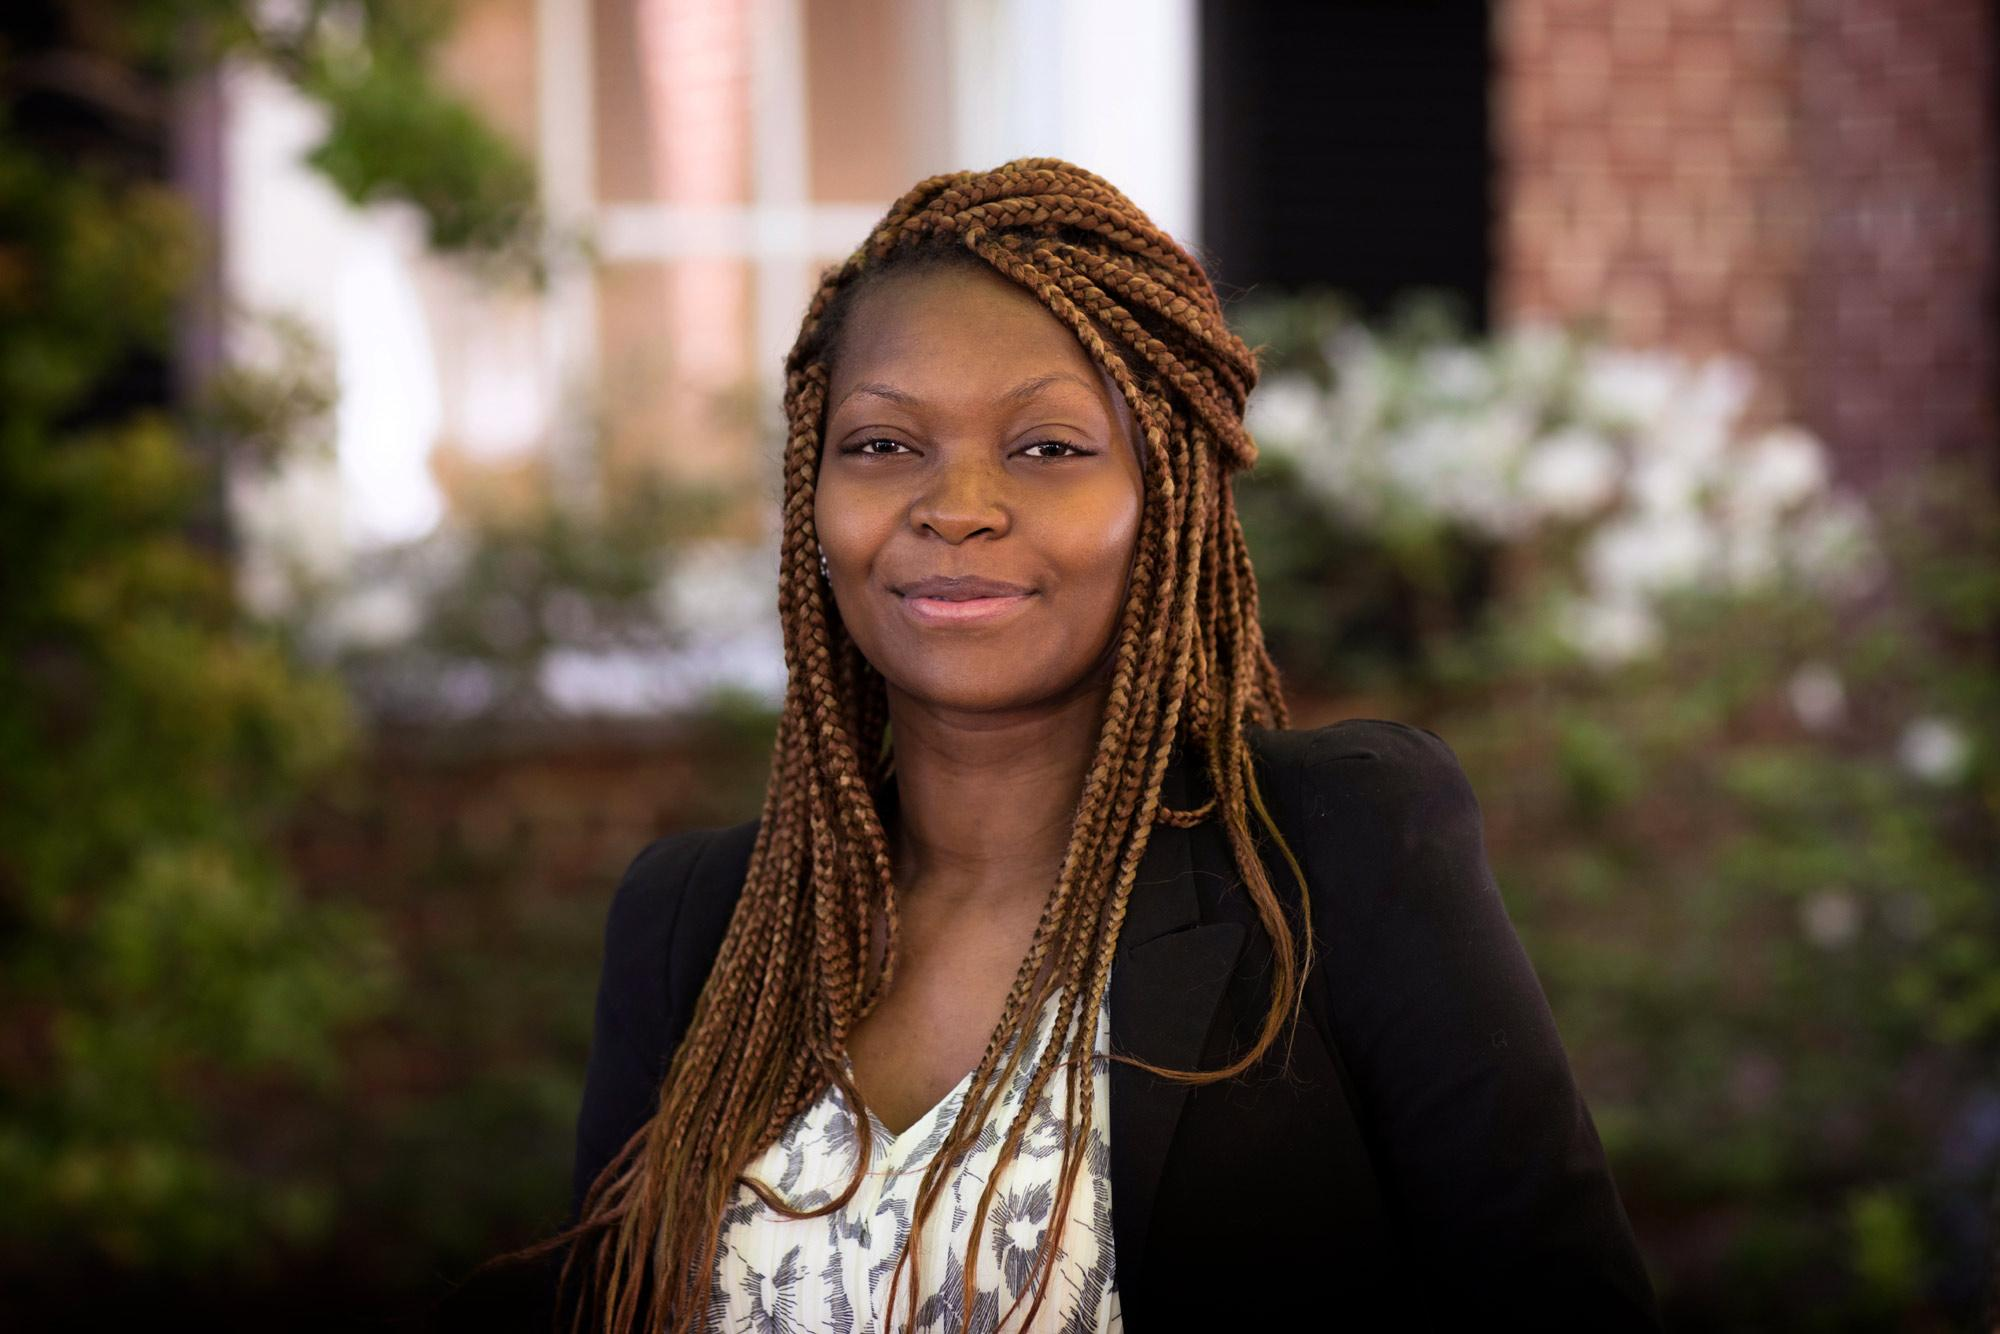 Recent graduate Gaelle Mawadjou Tchokoua said her experience at the Darden School of Business helped her learn to speak up and step out of her comfort zone.